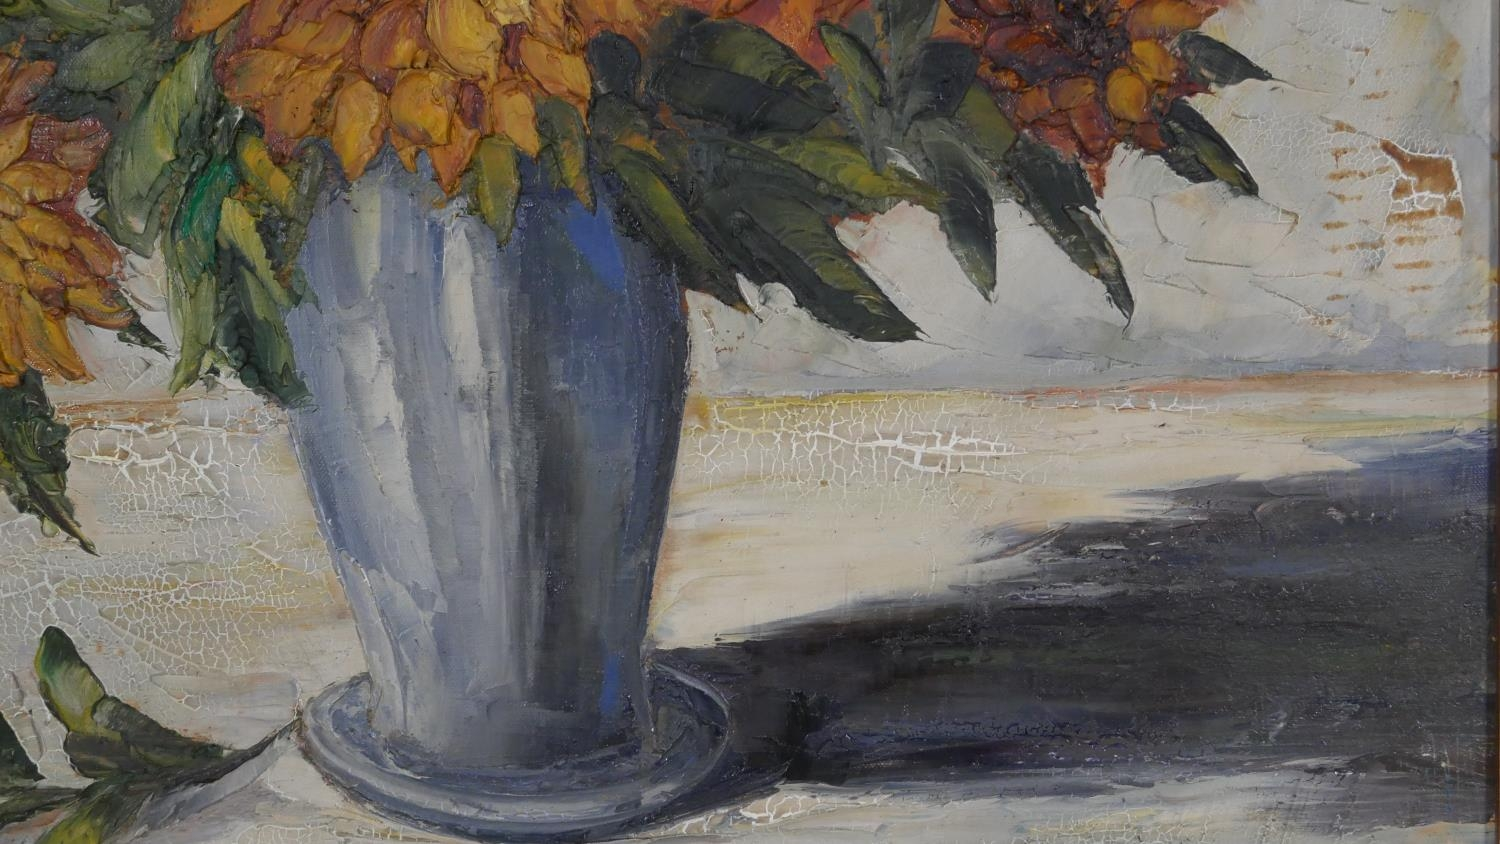 A framed oil on canvas, sunflowers in a vase, signed Van Dam. H.81 W.55.5cm - Image 4 of 7